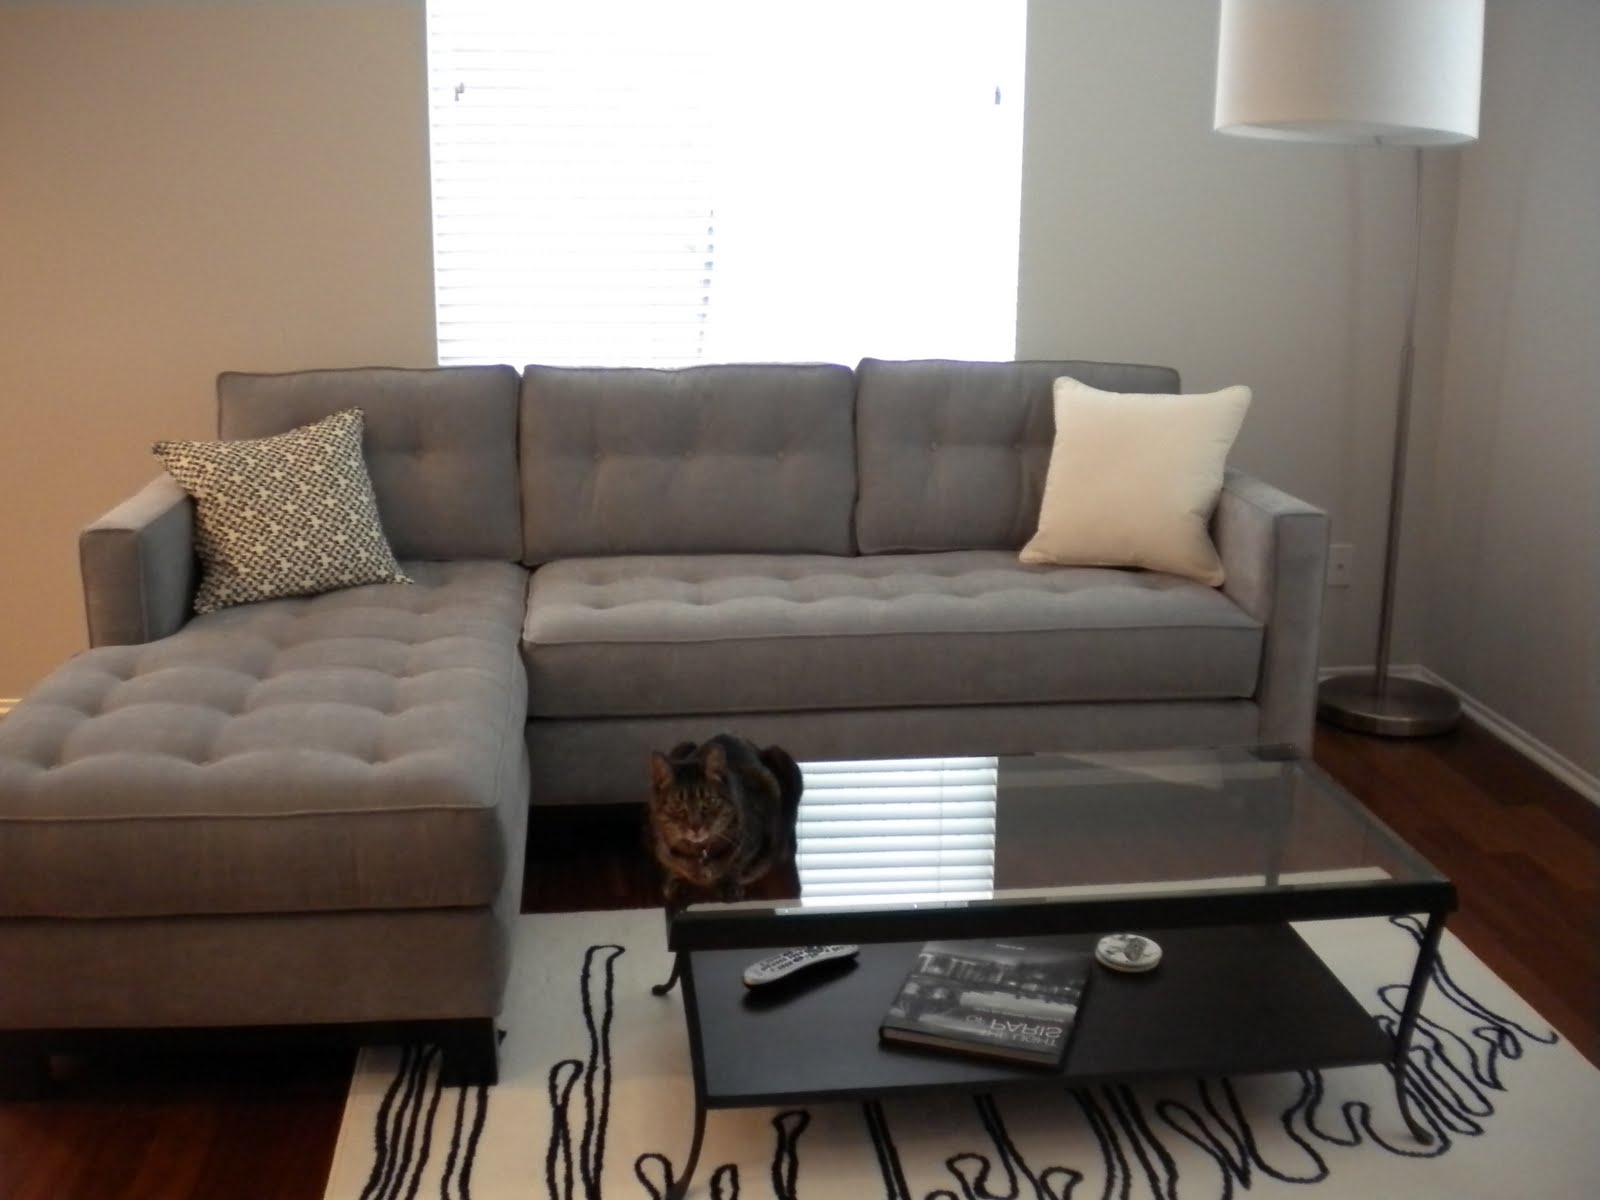 Popular Tufted Sectionals With Chaise For Interior: Gray Couches Living Room Features Light Gray Velvet (View 7 of 15)